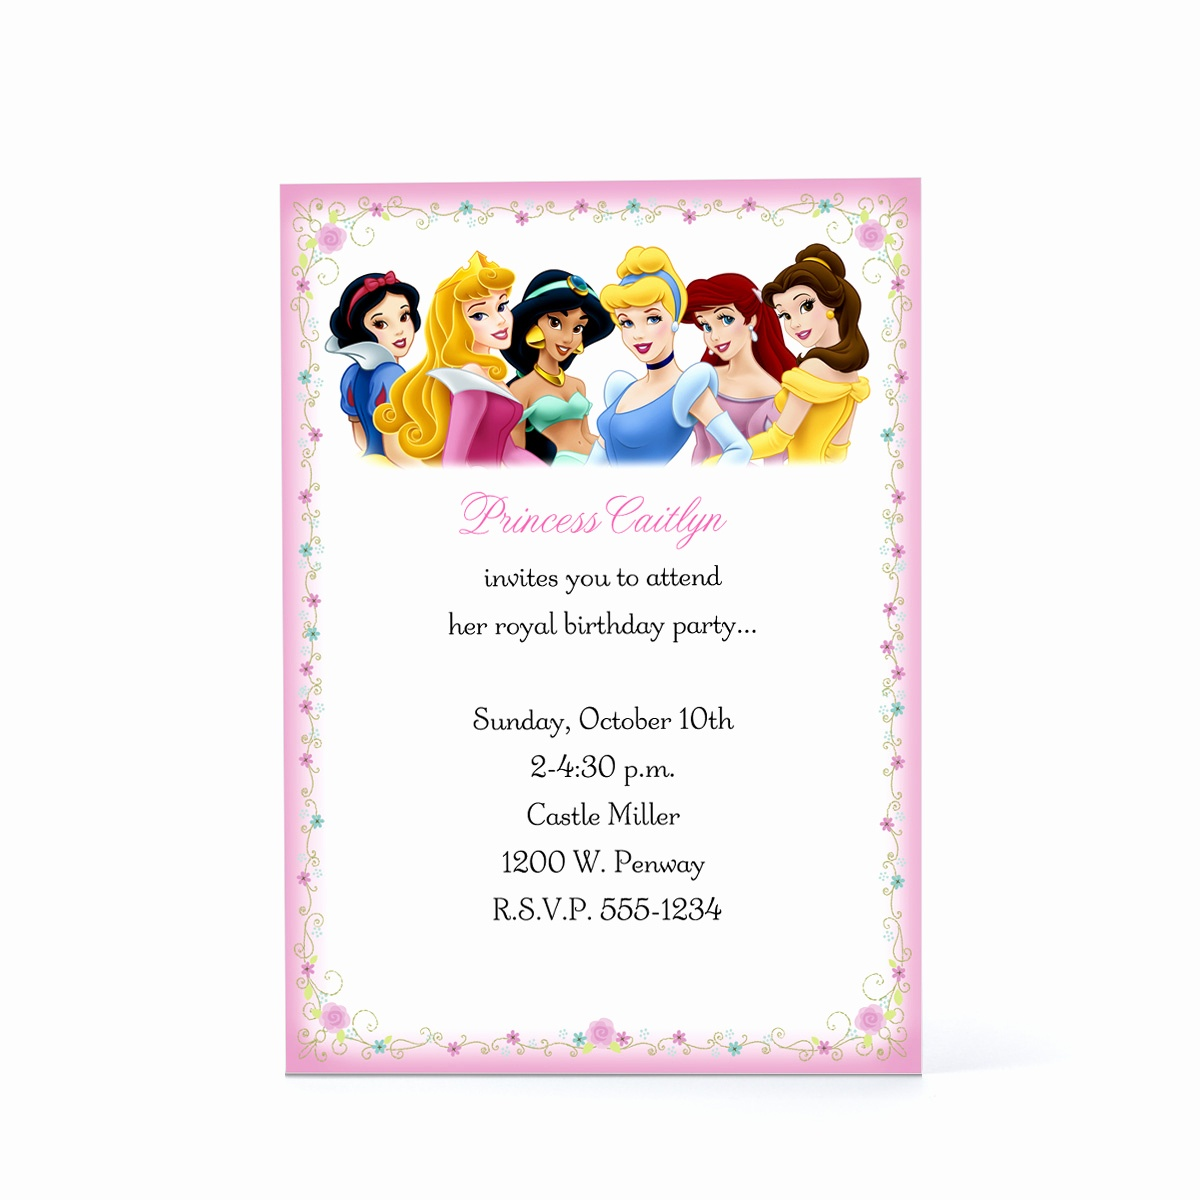 Disney Princess Birthday Invitations Free Printable Beautiful Disney - Disney Princess Birthday Invitations Free Printable